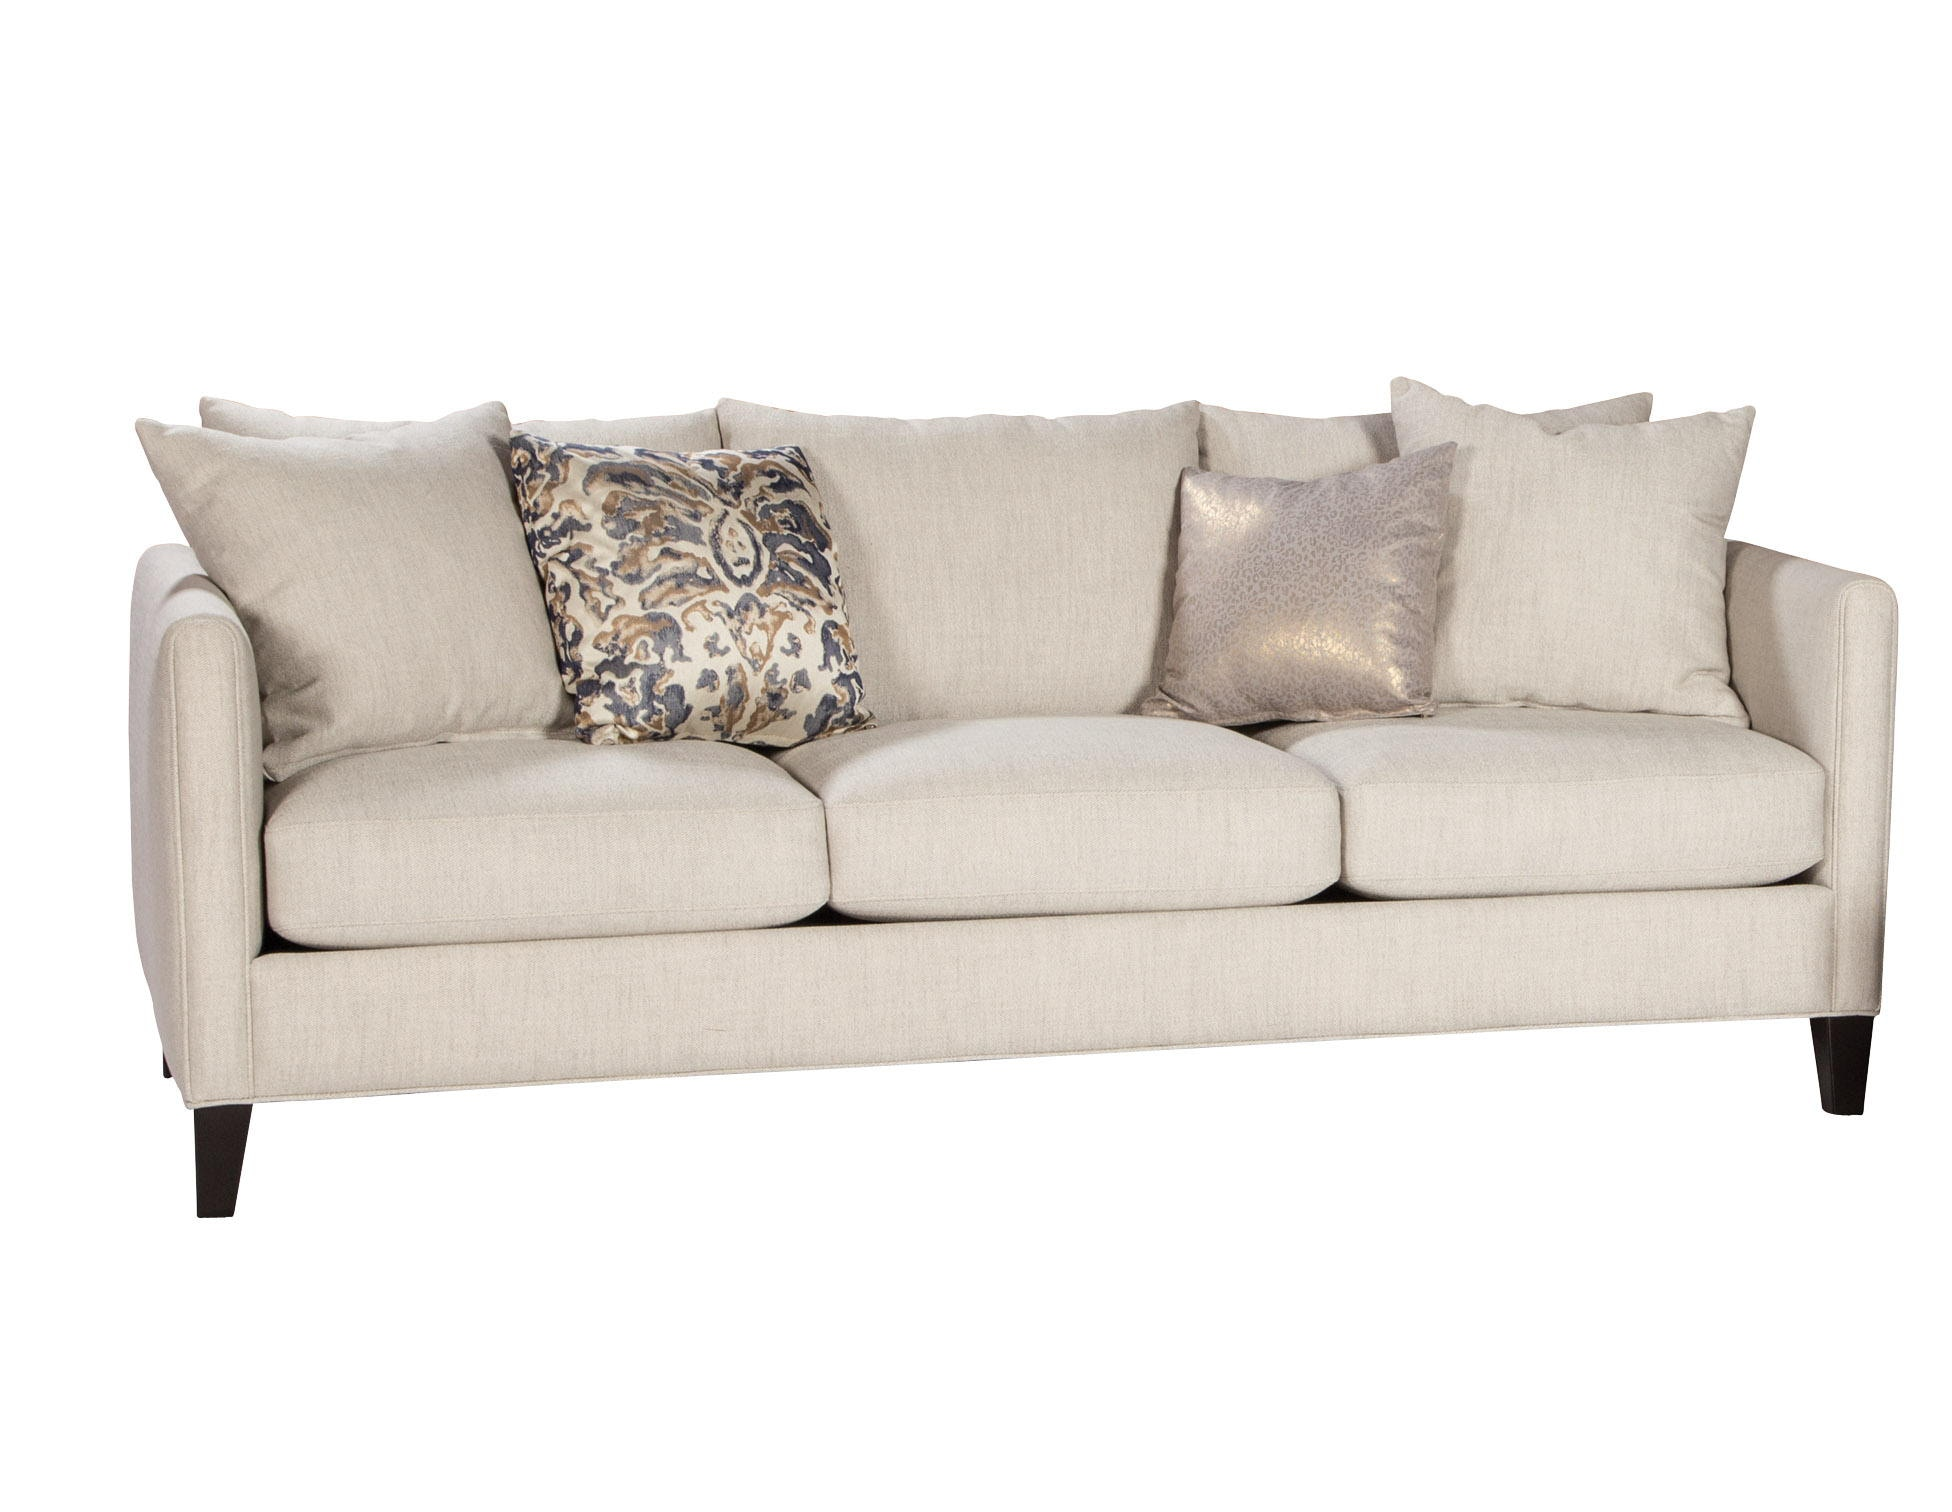 Jonathan Louis International Living Room Estate Sofa 09570 - Indiana Furniture and Mattress ...